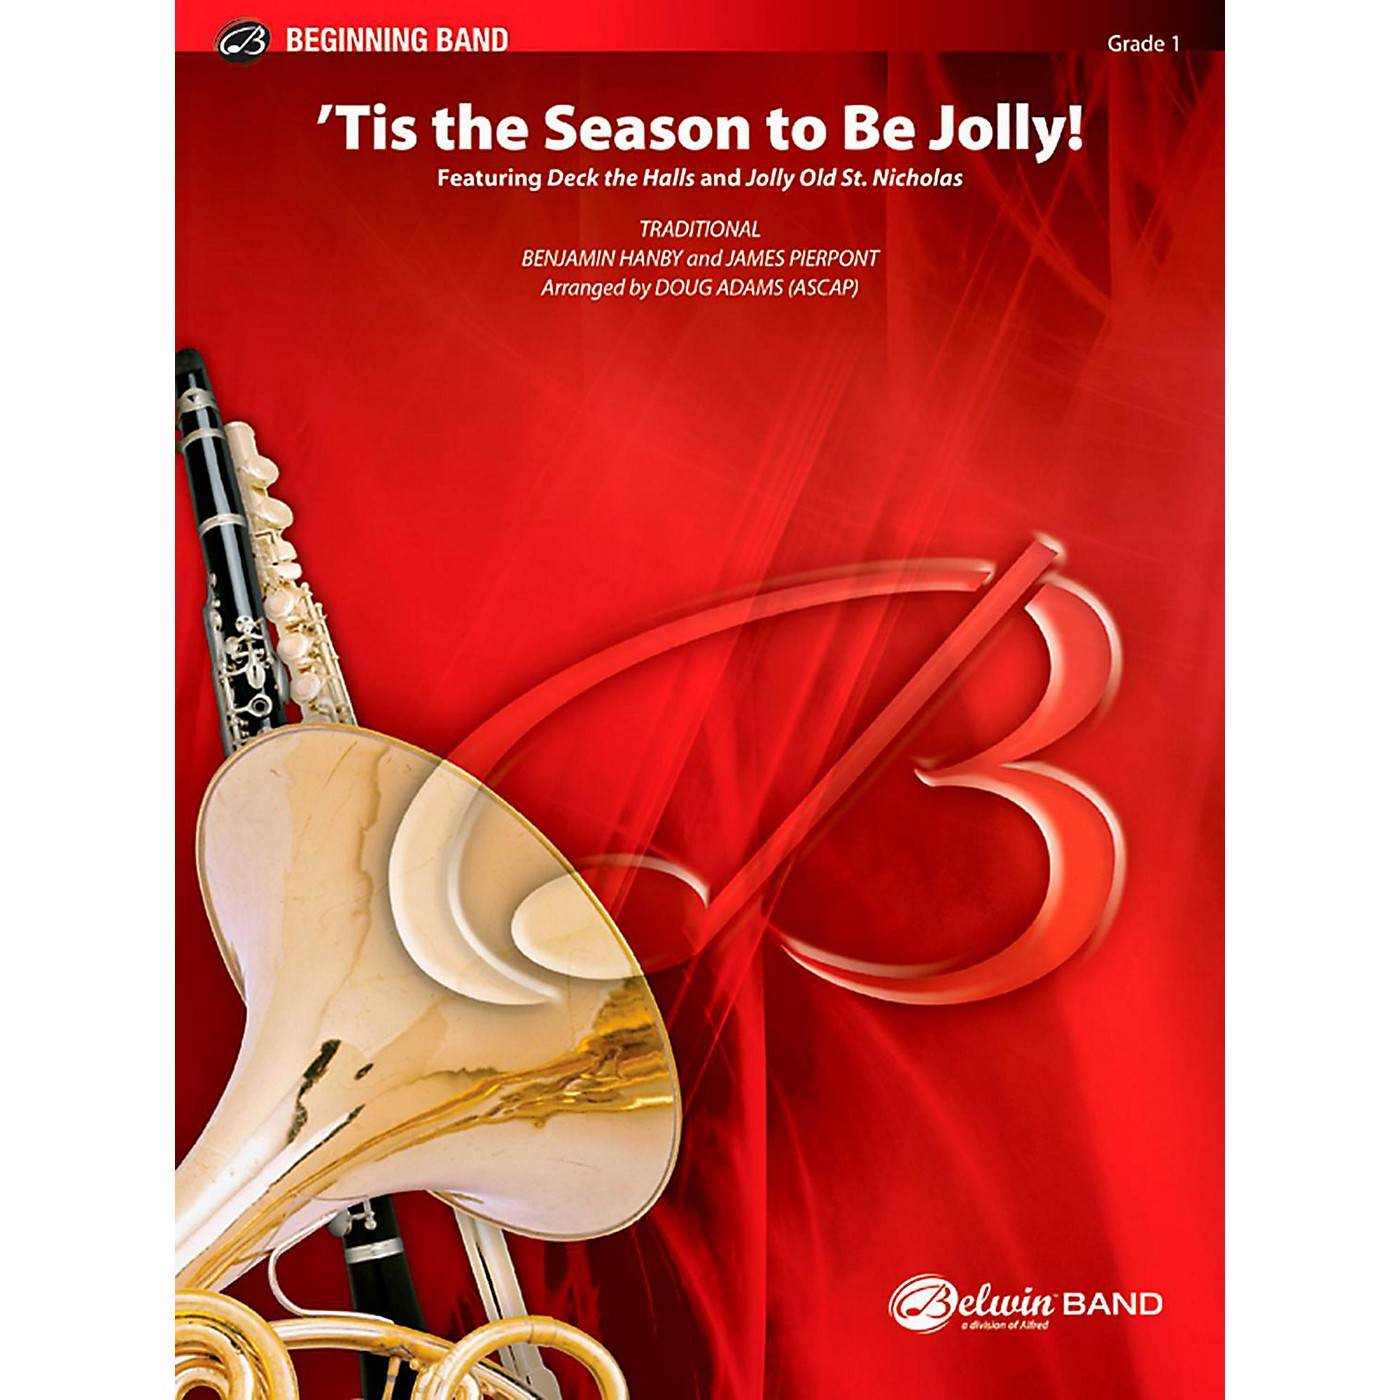 BELWIN Tis the Season to Be Jolly! Concert Band Grade 1 (Very Easy) thumbnail